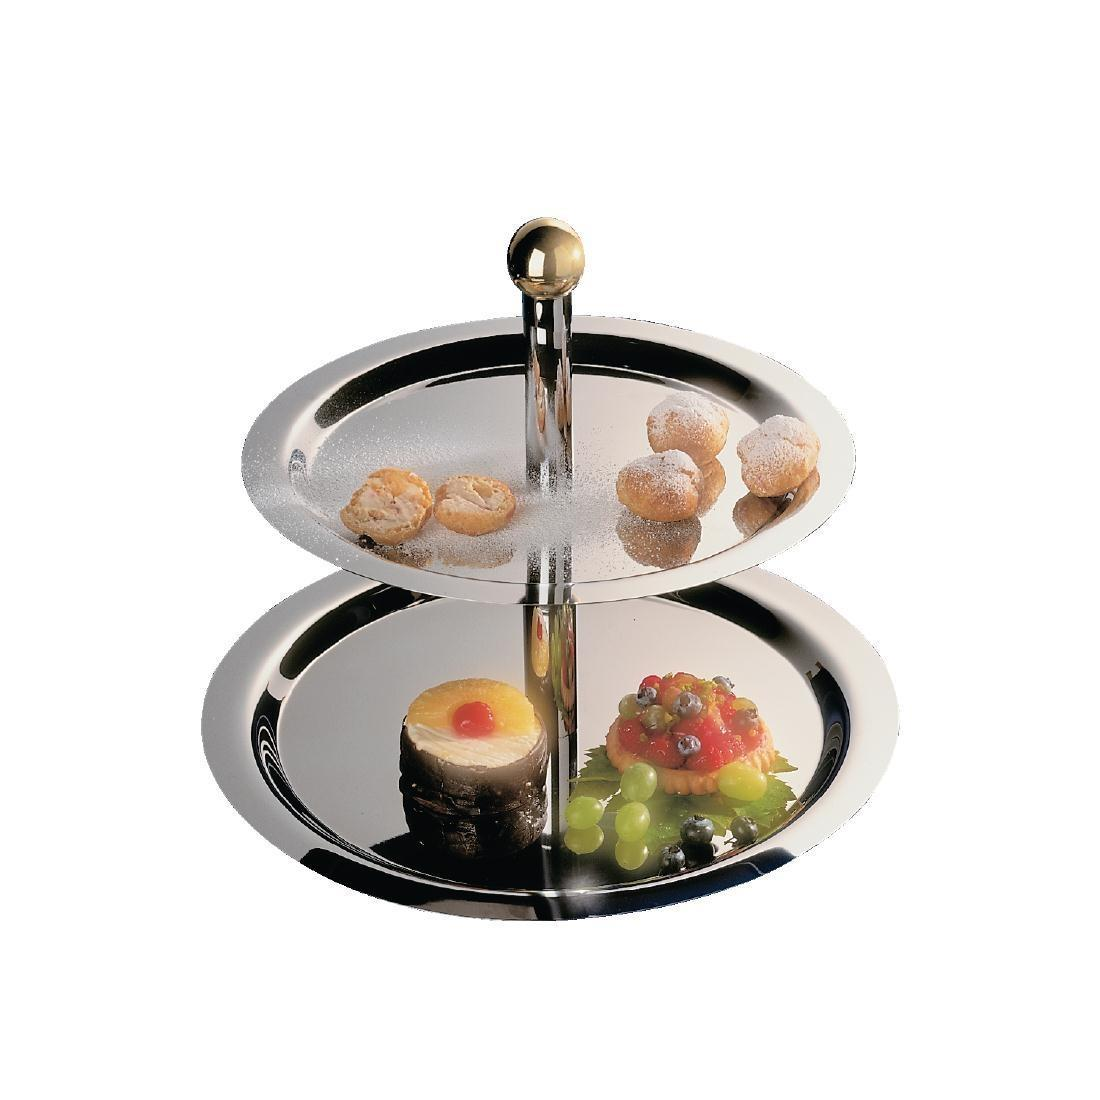 Stainless Steel 2 Tier Afternoon Tea Stand - Each - S025